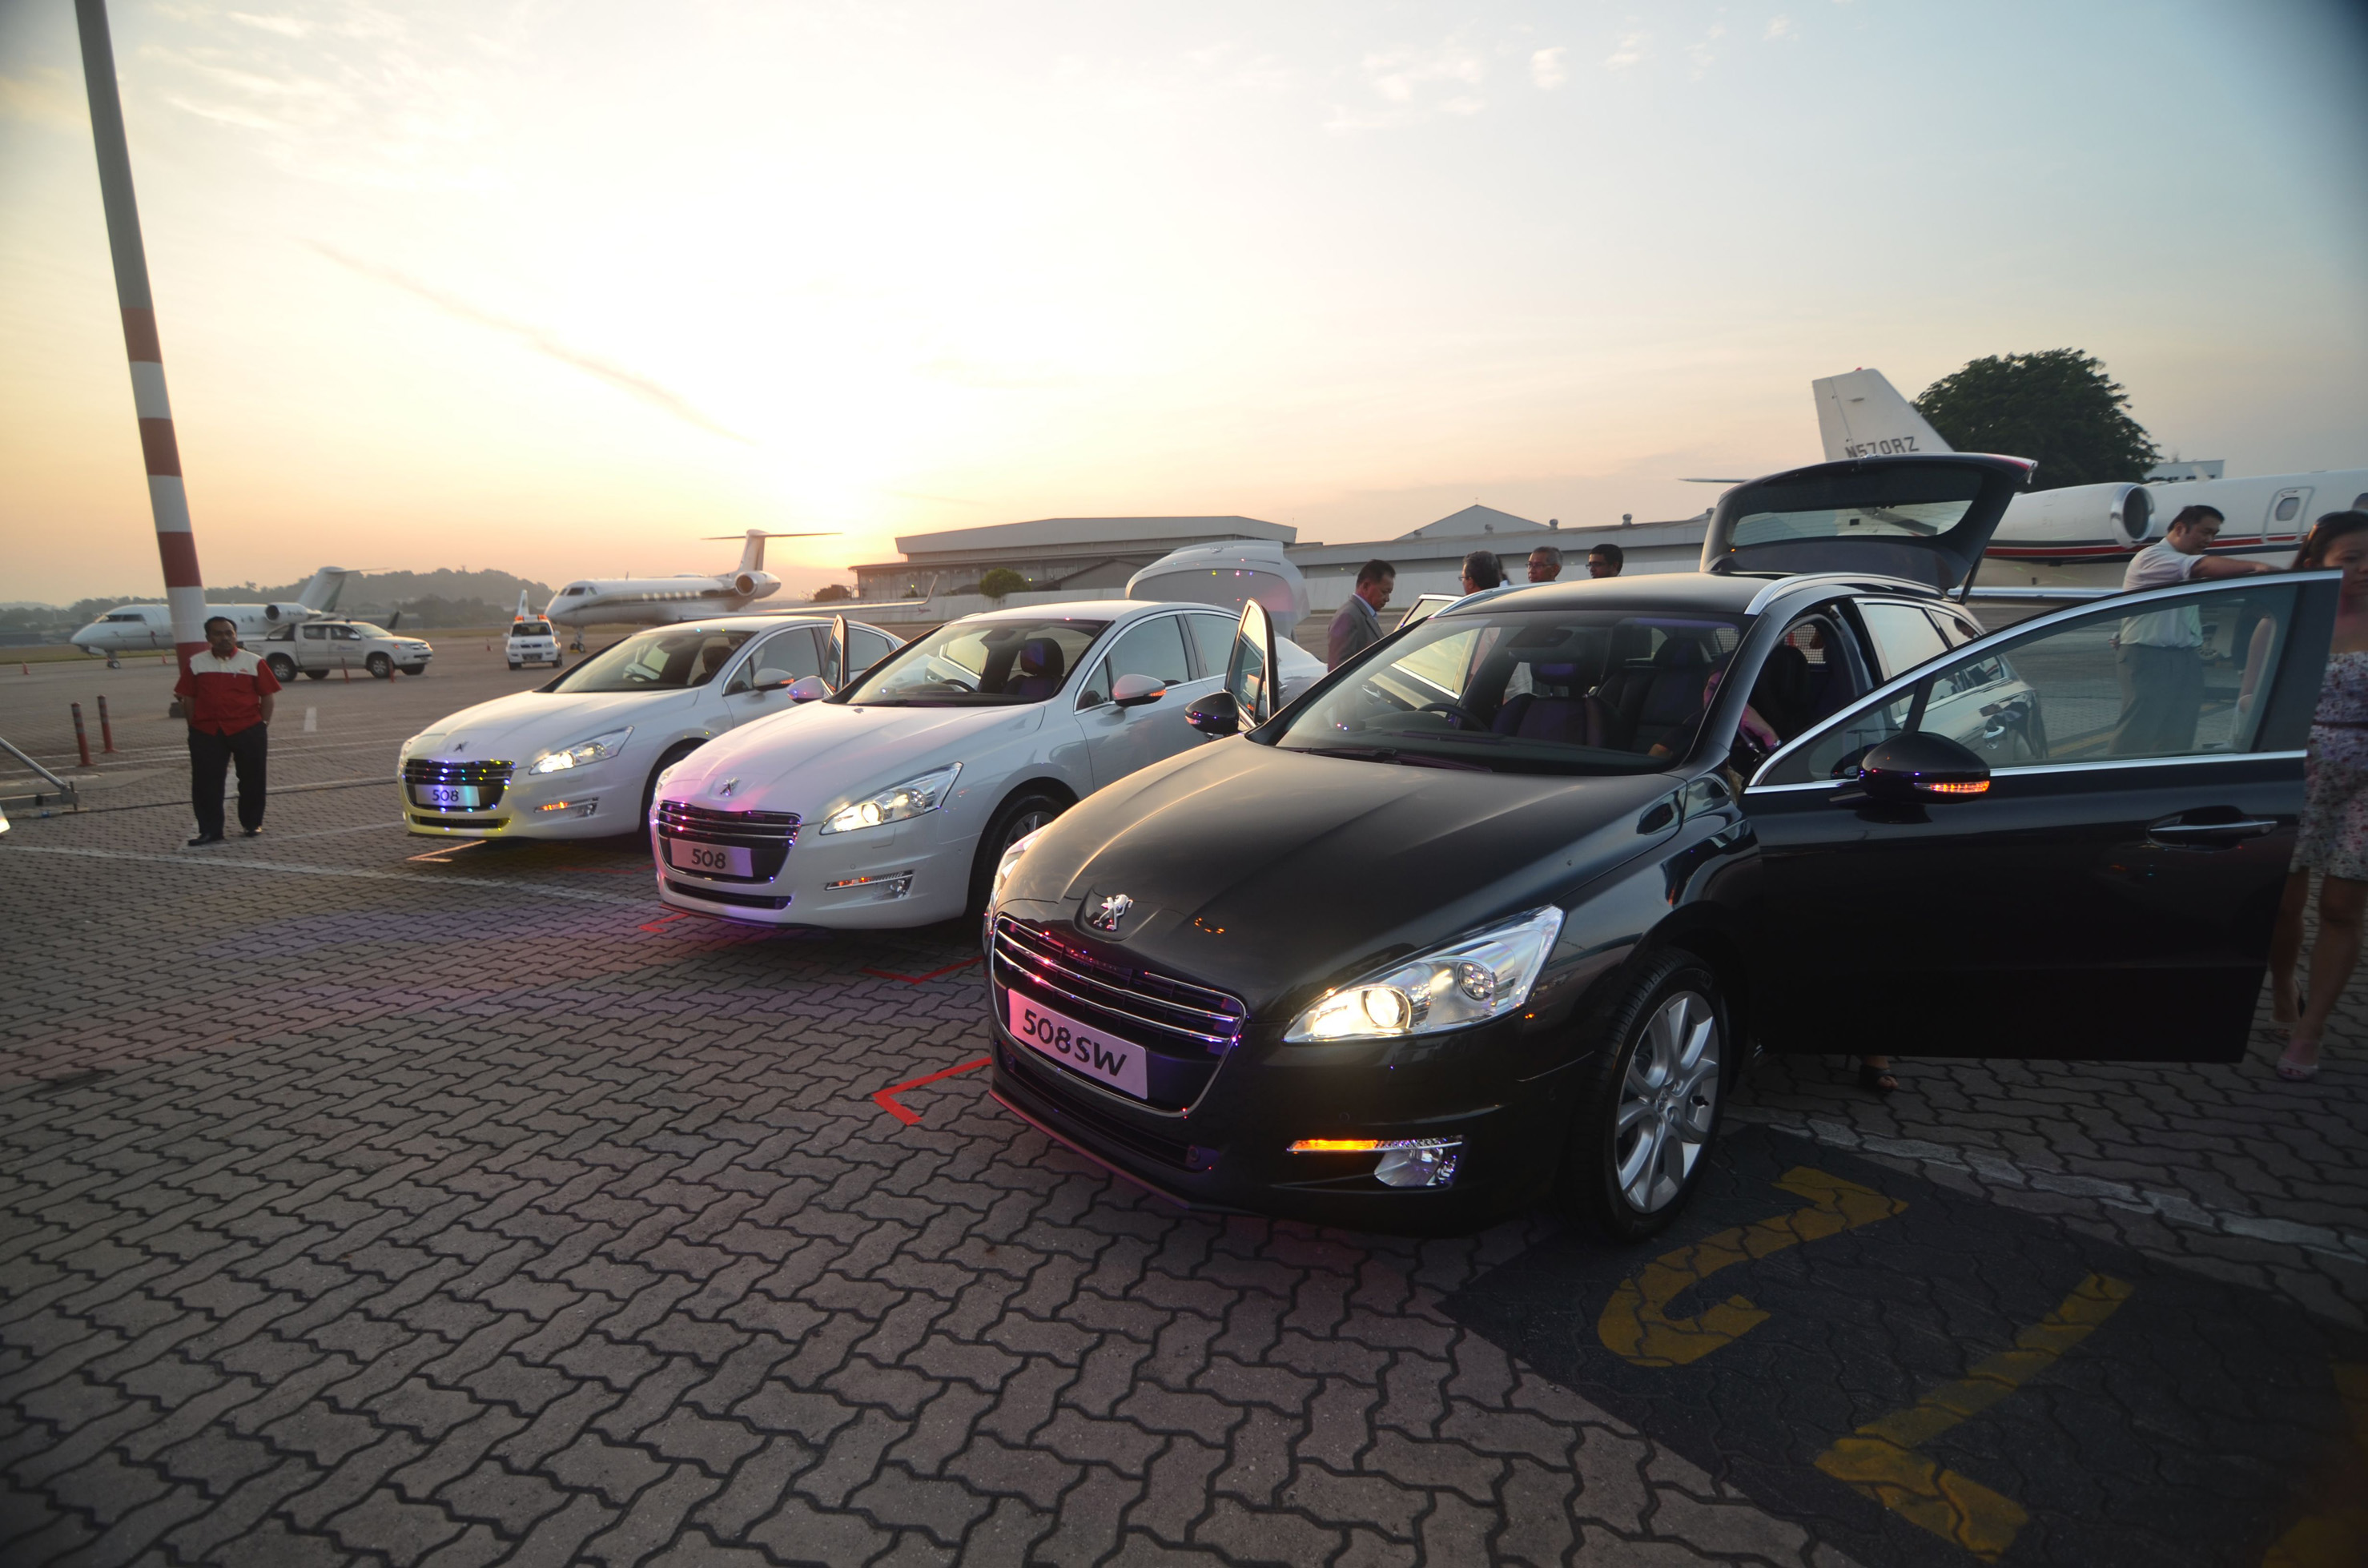 Full range of Peugeot 508 launched - Beyond First Cl - kensomuse